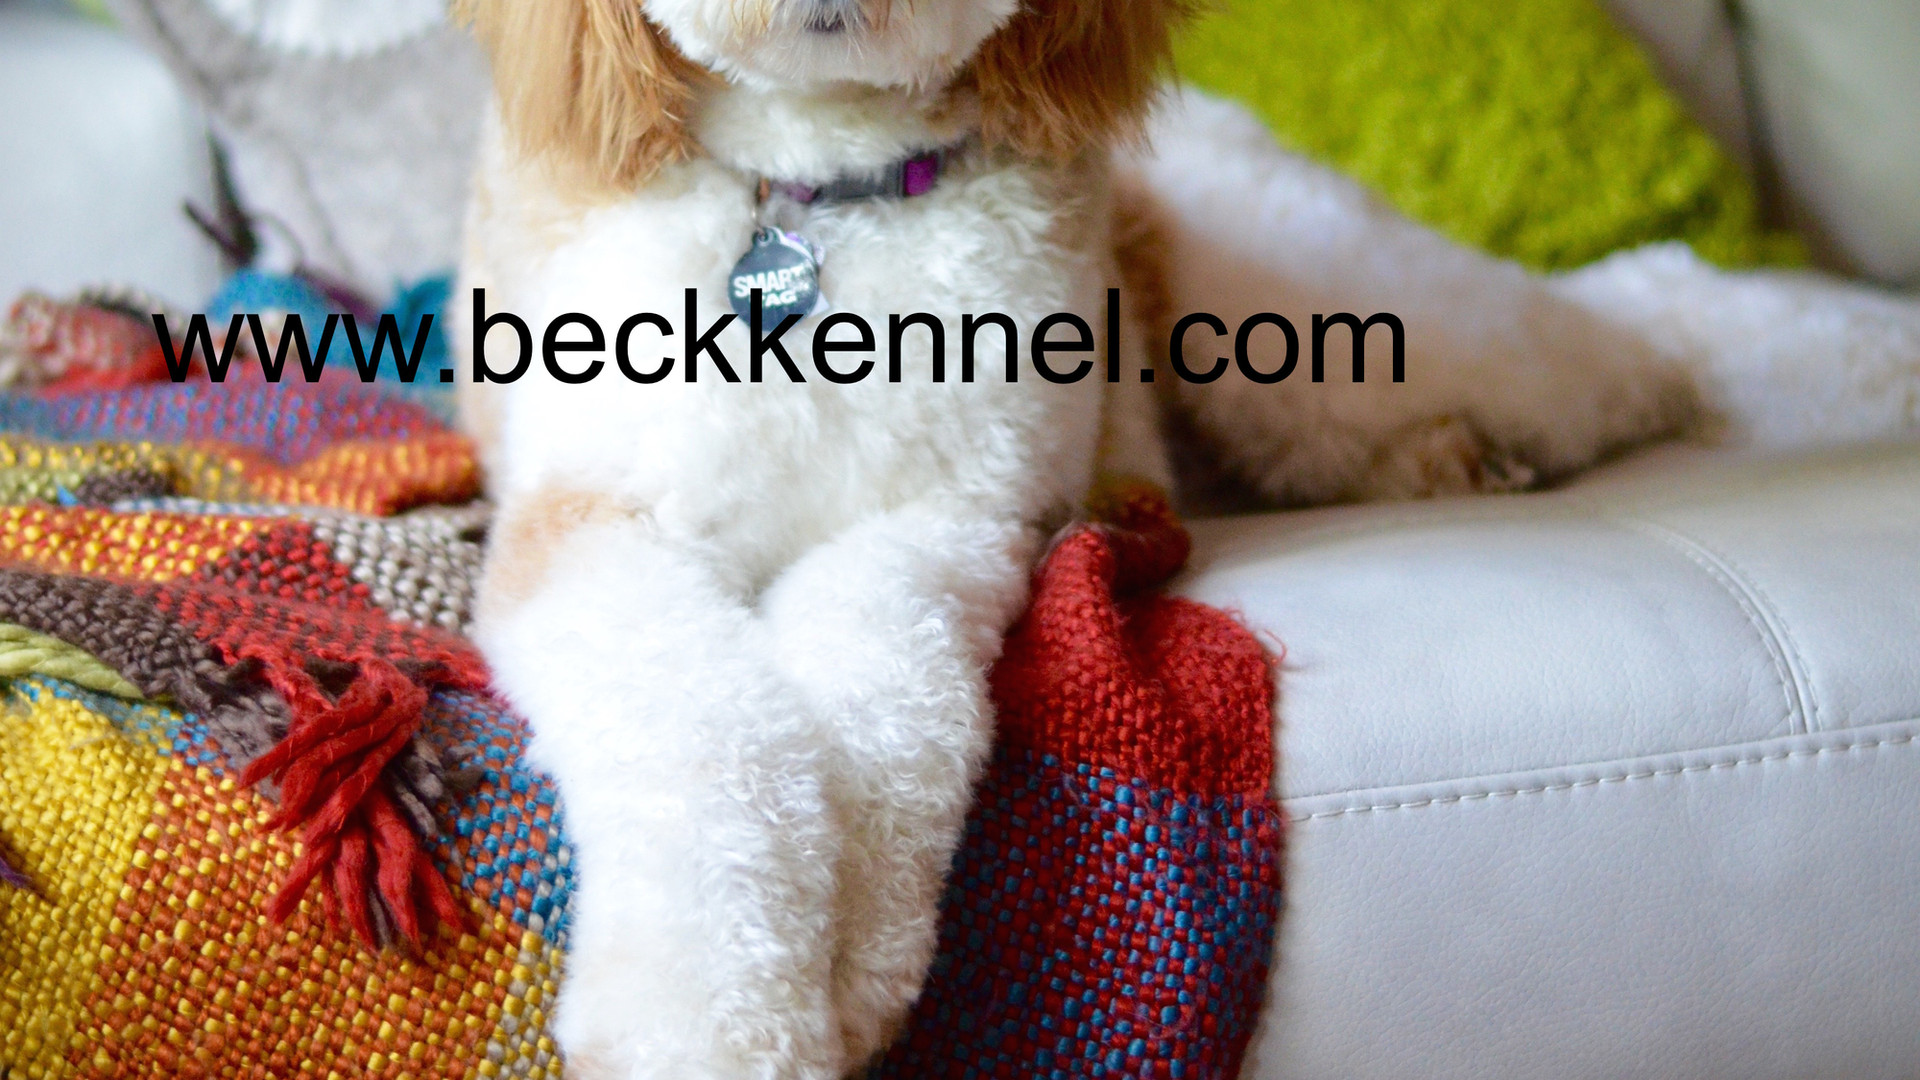 Beck Kennel's Ruby